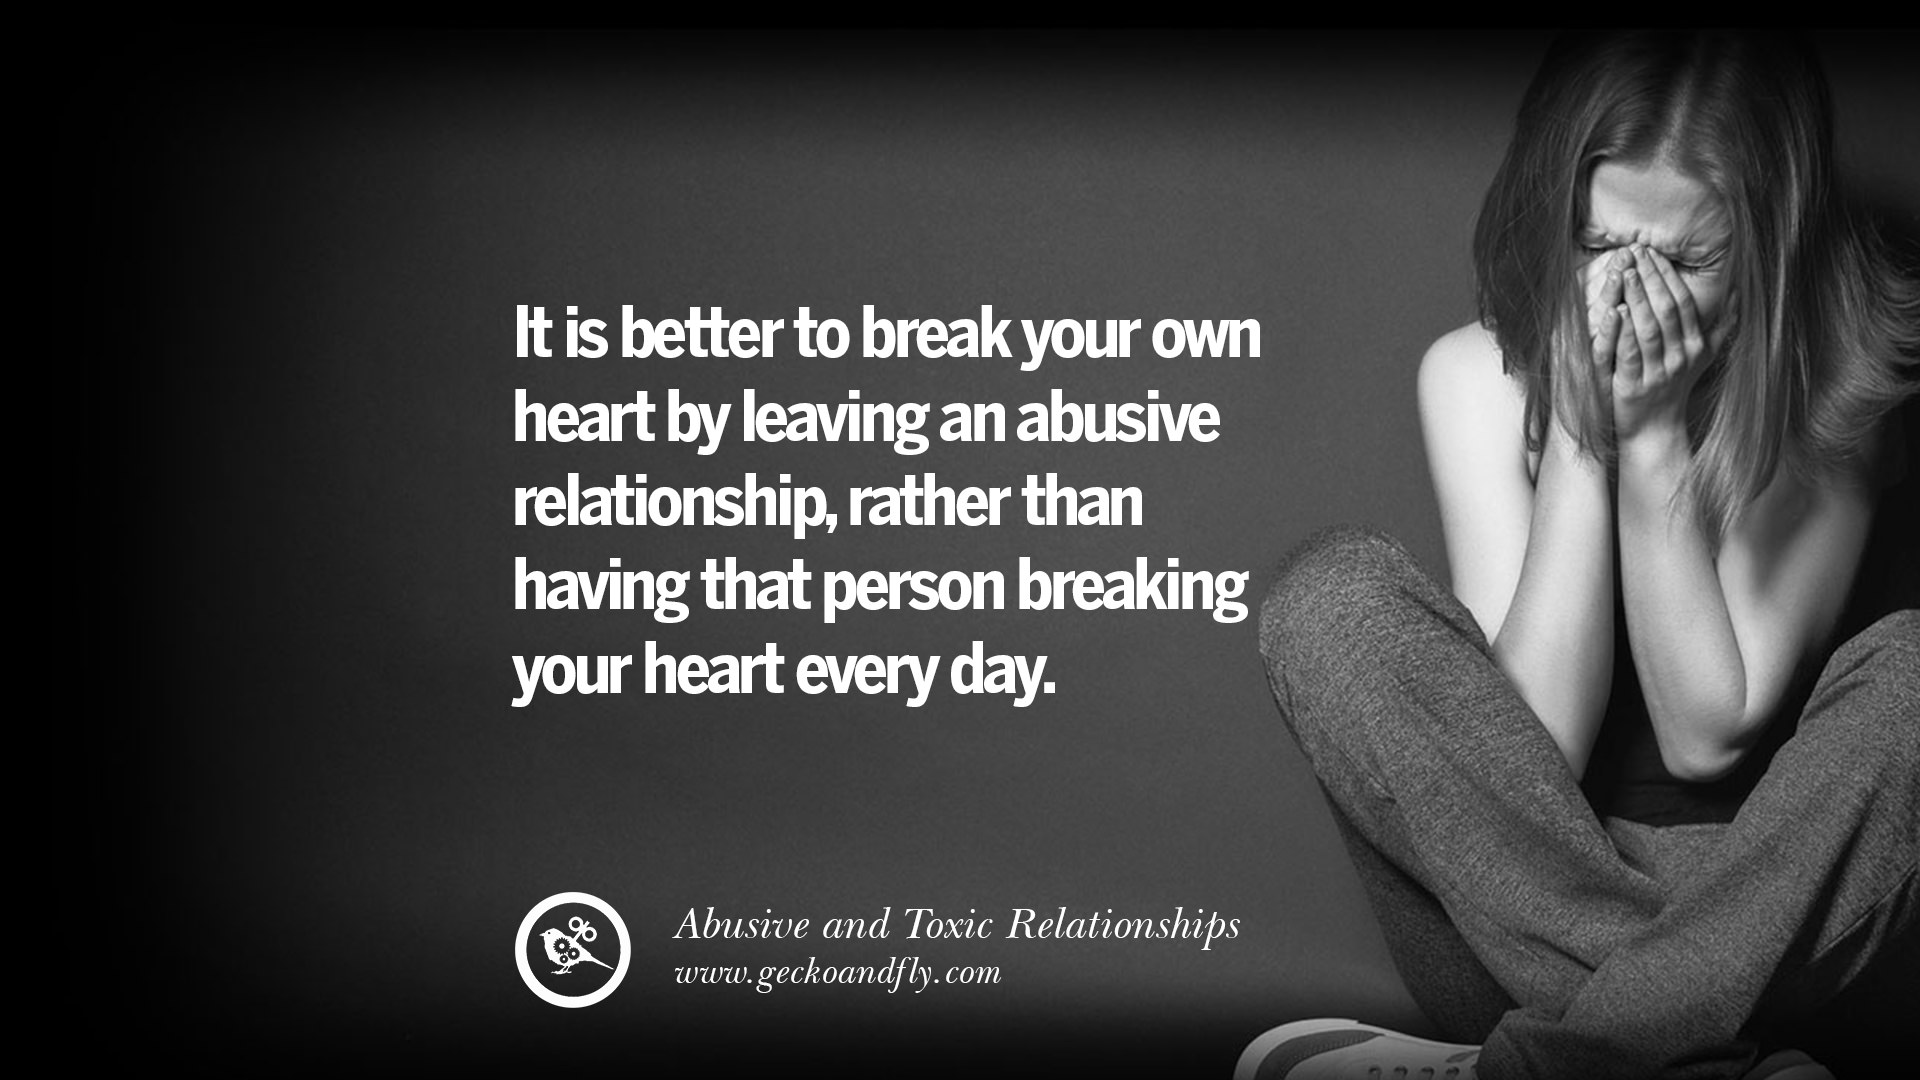 Toxic Relationship Quotes Impressive 30 Quotes On Leaving An Abusive Toxic Relationships And Be .